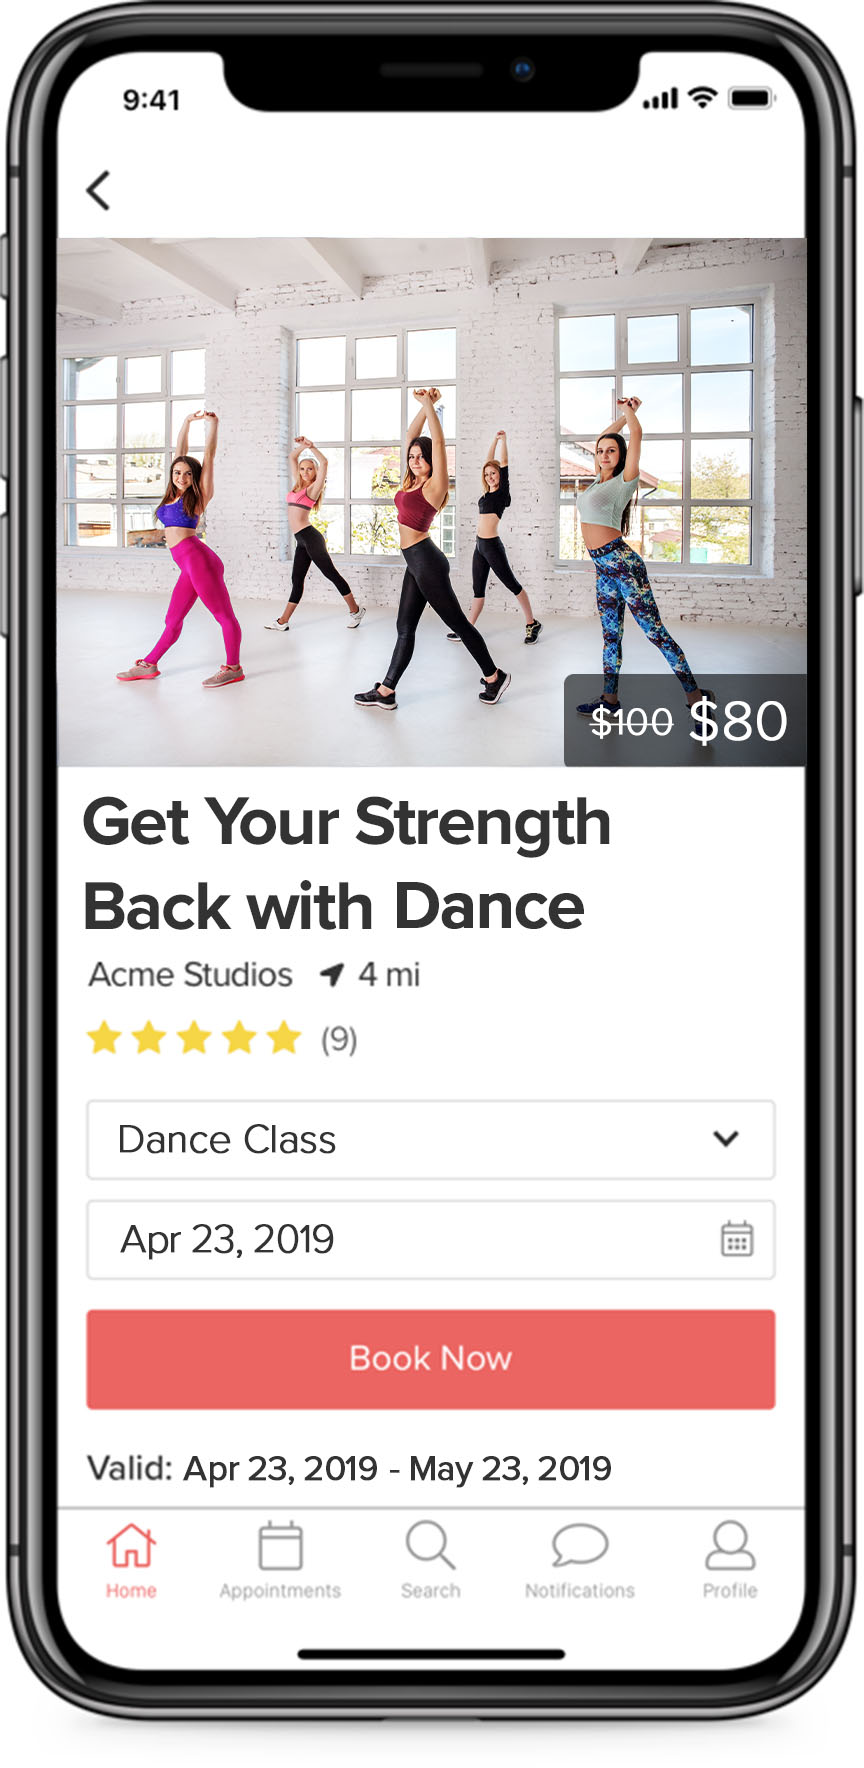 Marketing Tools for Ballet, Hip Hop and Ballroom Dance Studios